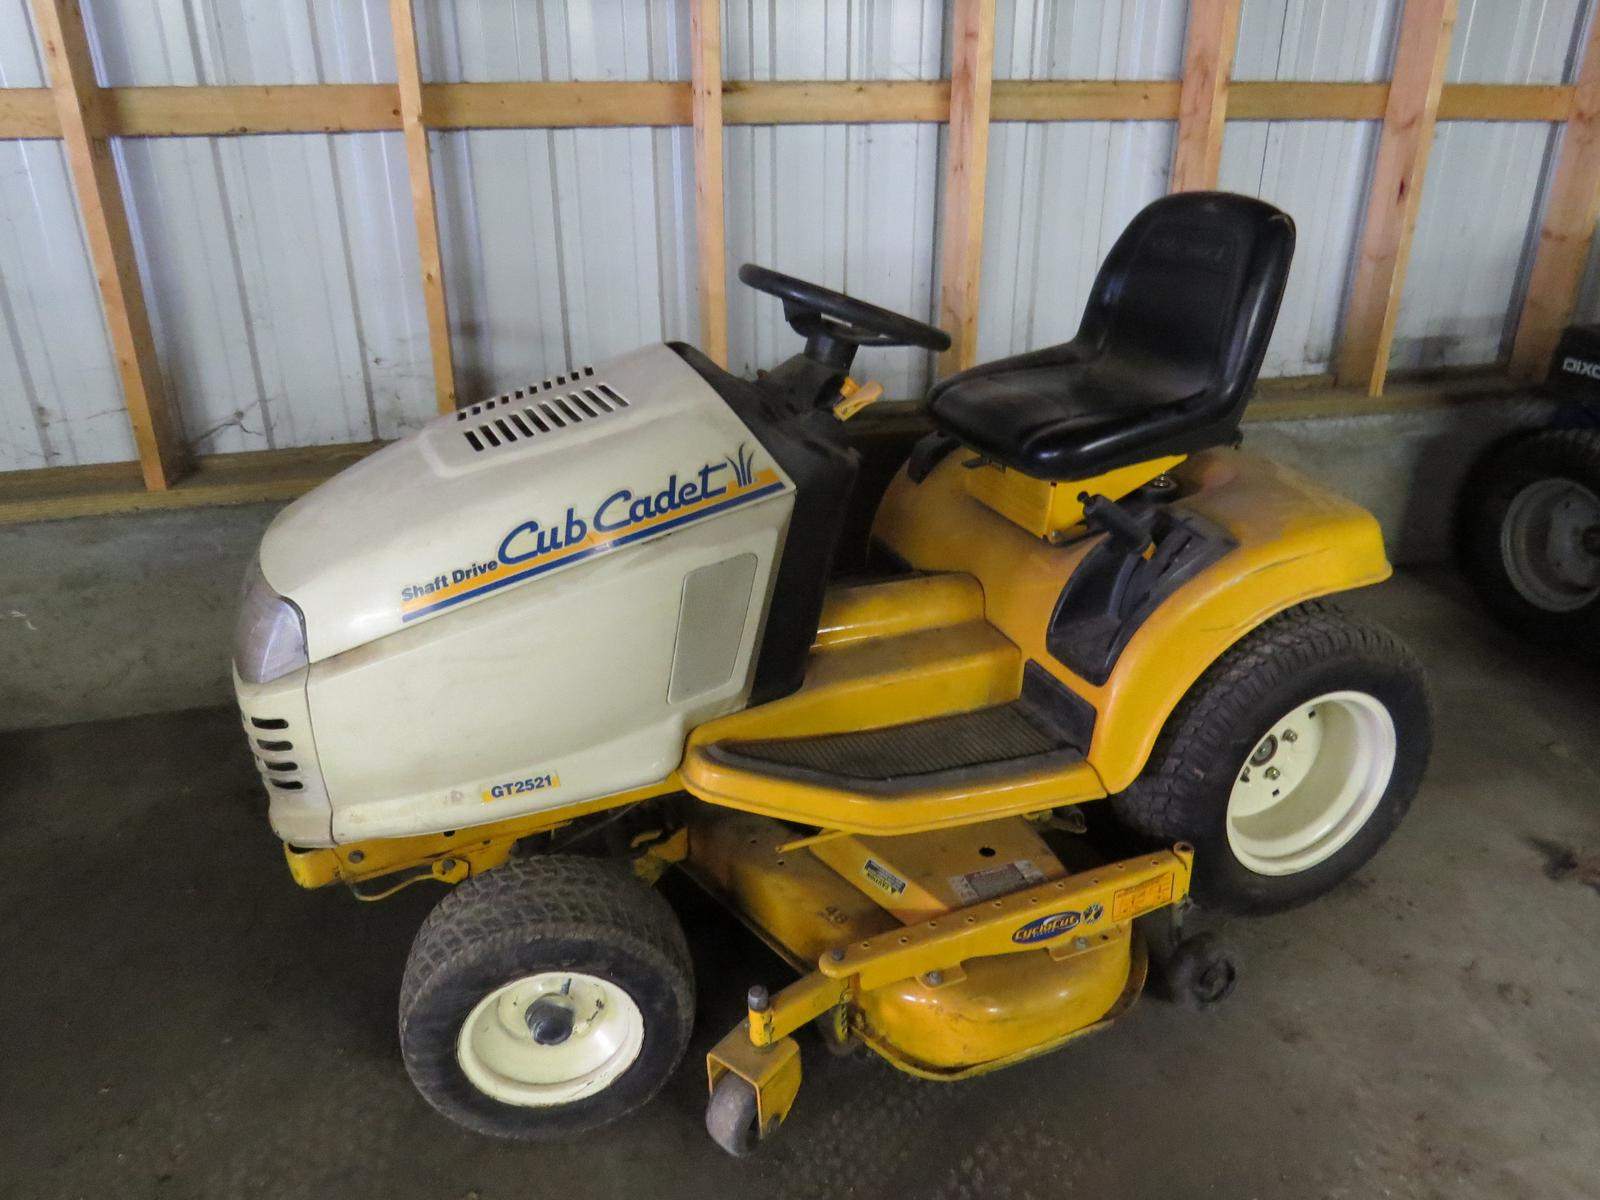 Inventory from Bobcat and Cub Cadet Holtz Service & Small